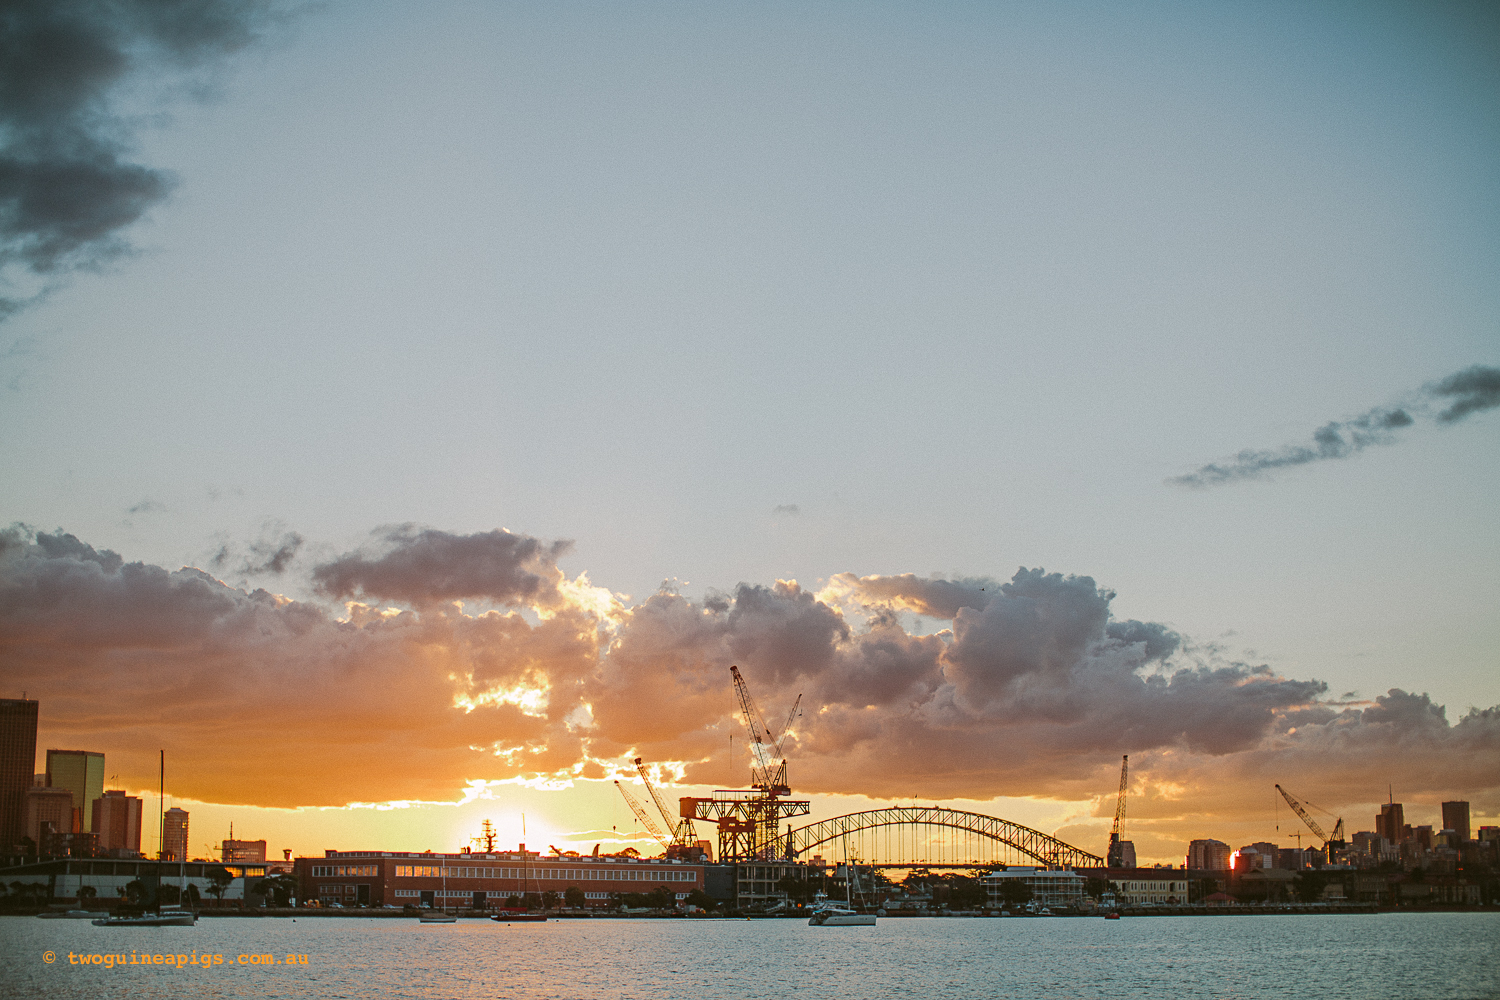 twoguineapigs_rushcutters_bay_winter_sunset_landscapes_1500-15.jpg